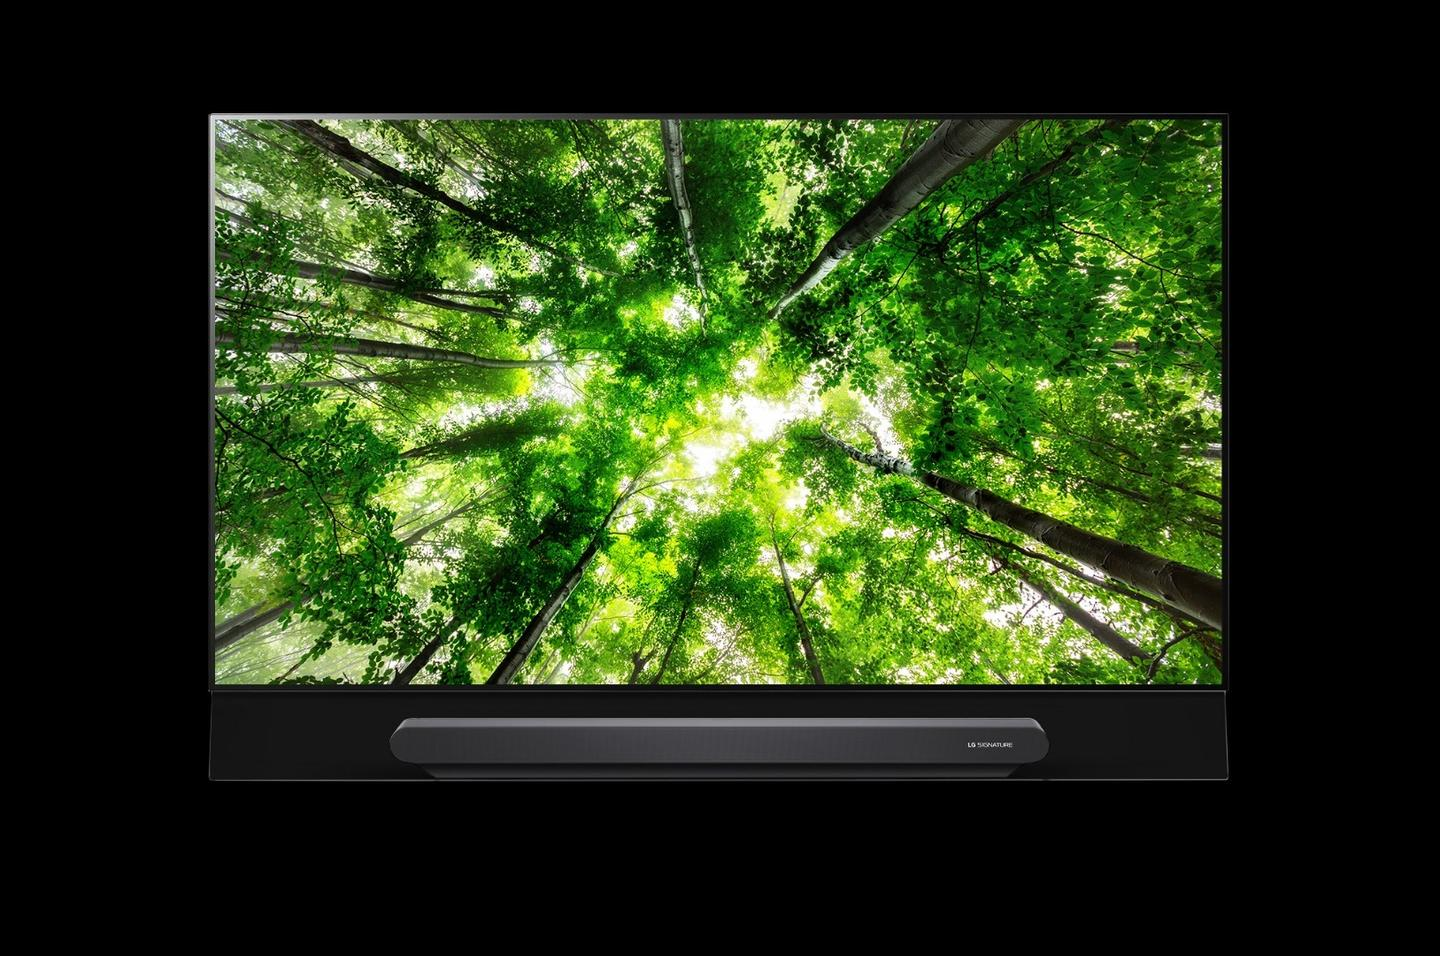 The W8 is the signature TV in LG's 2018 premium lineup